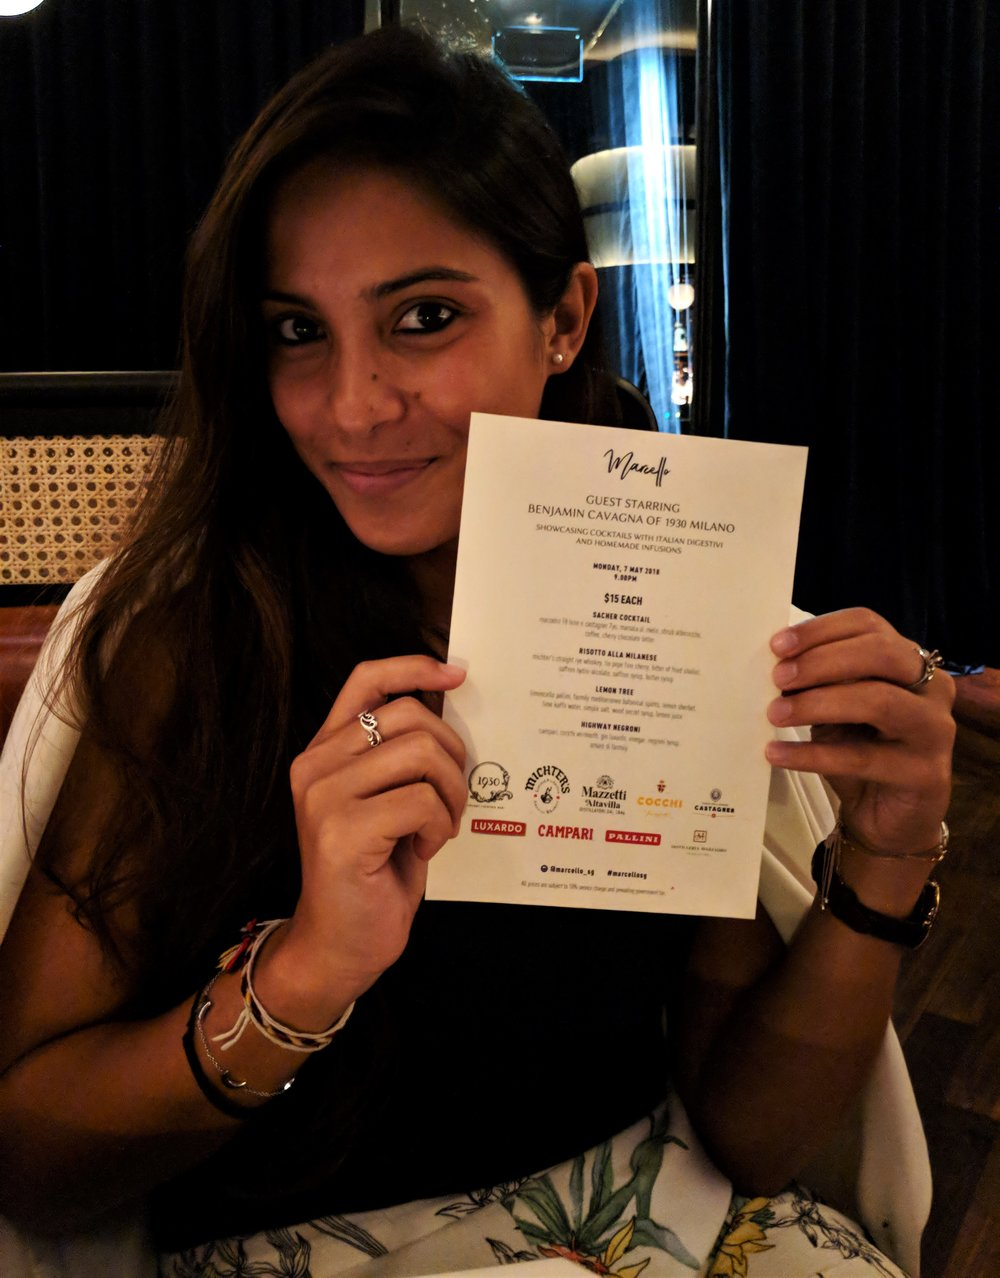 The beautiful Lorraine showing off the menu at Marcello